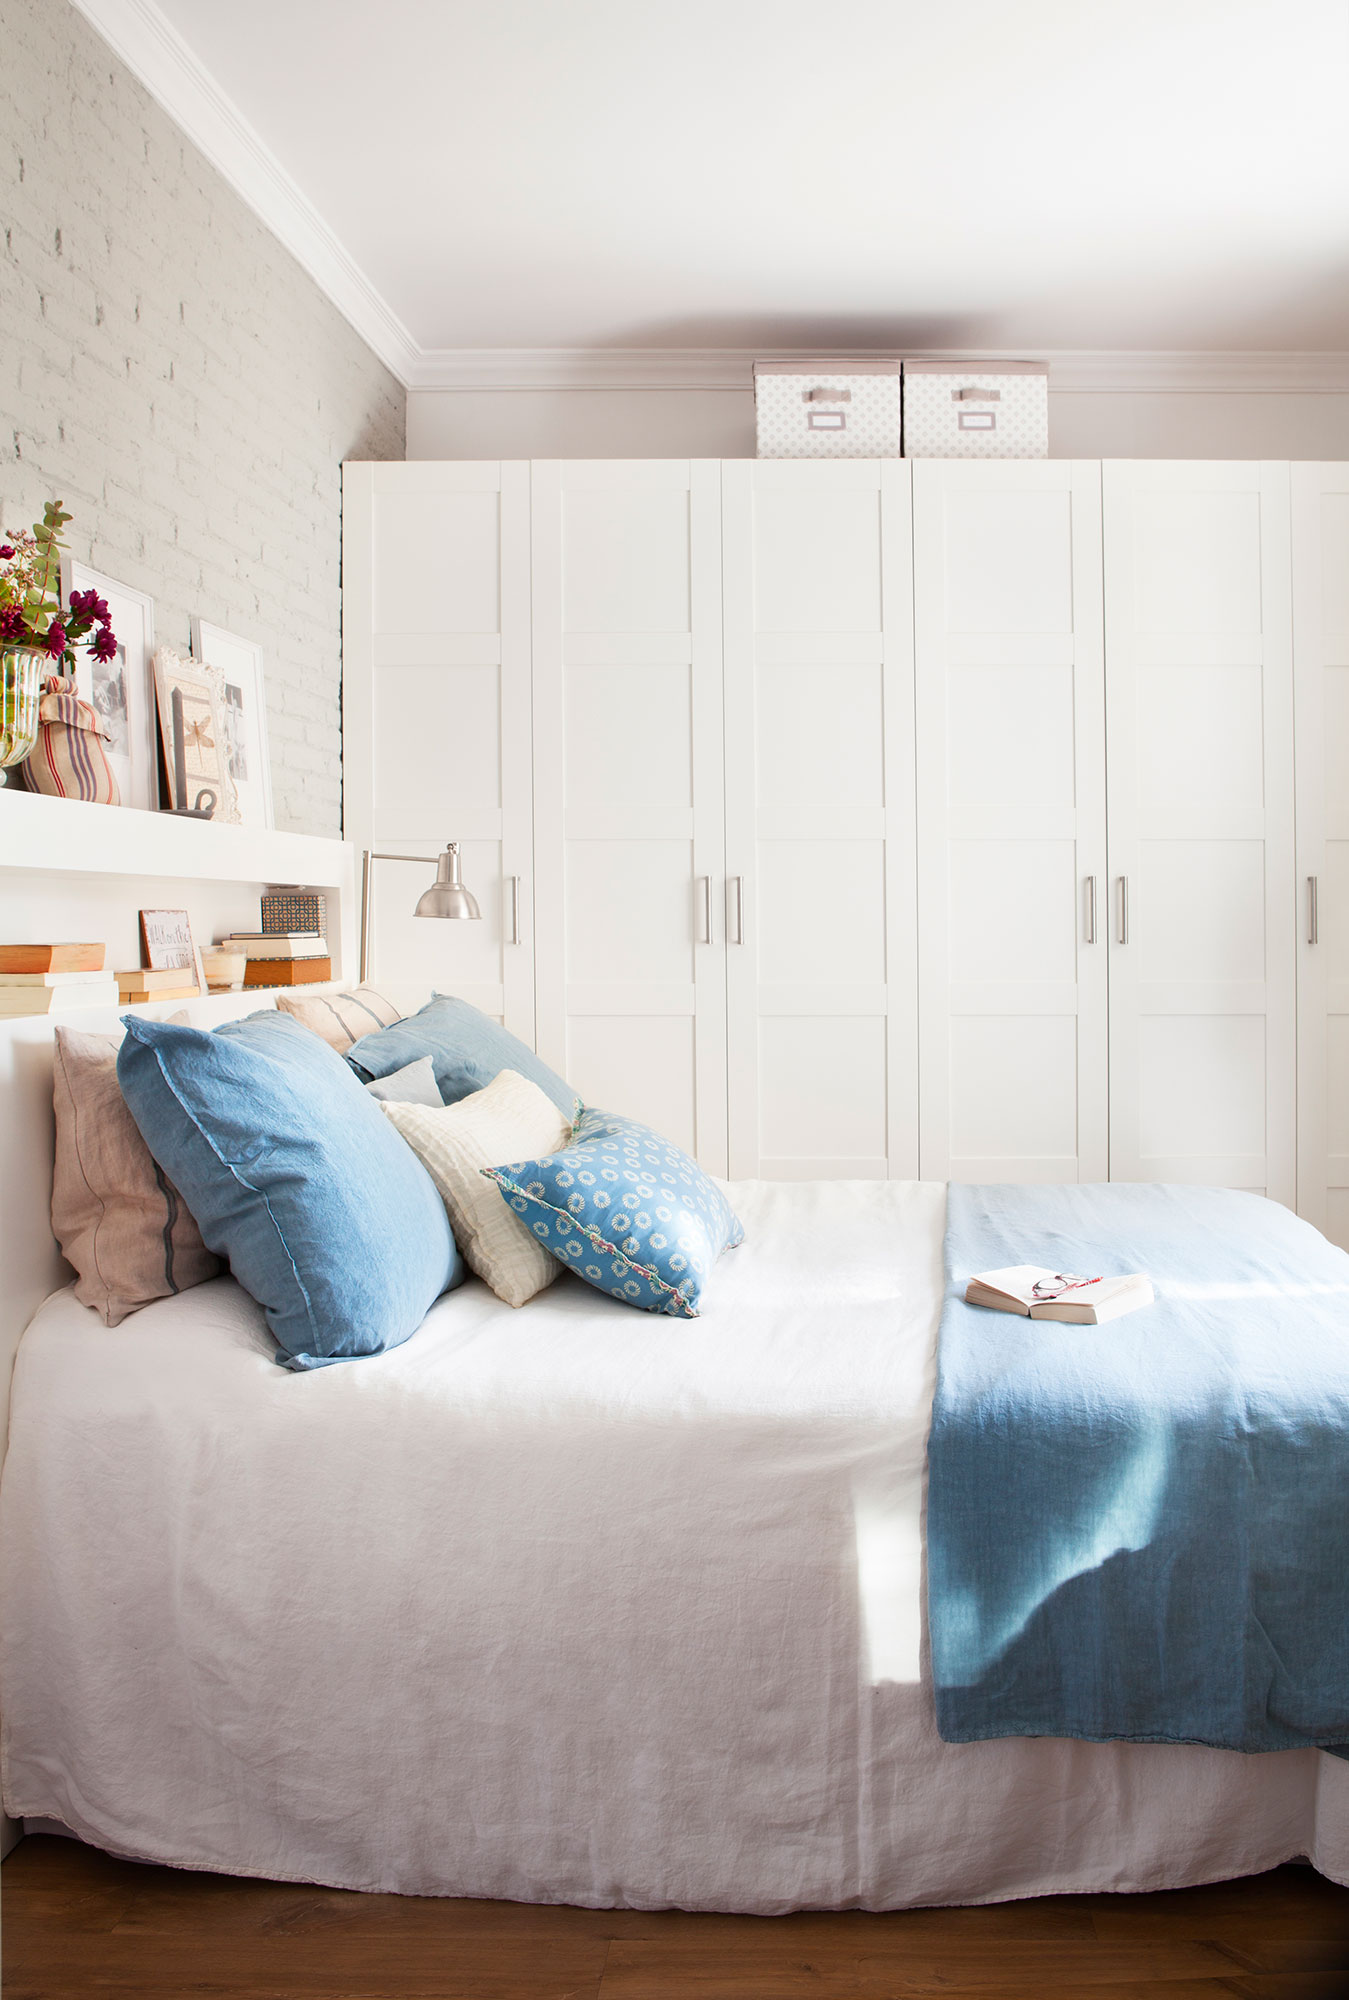 Compartir piso 10 ideas low cost para decorar tu dormitorio - Decoracion cabeceros originales ...